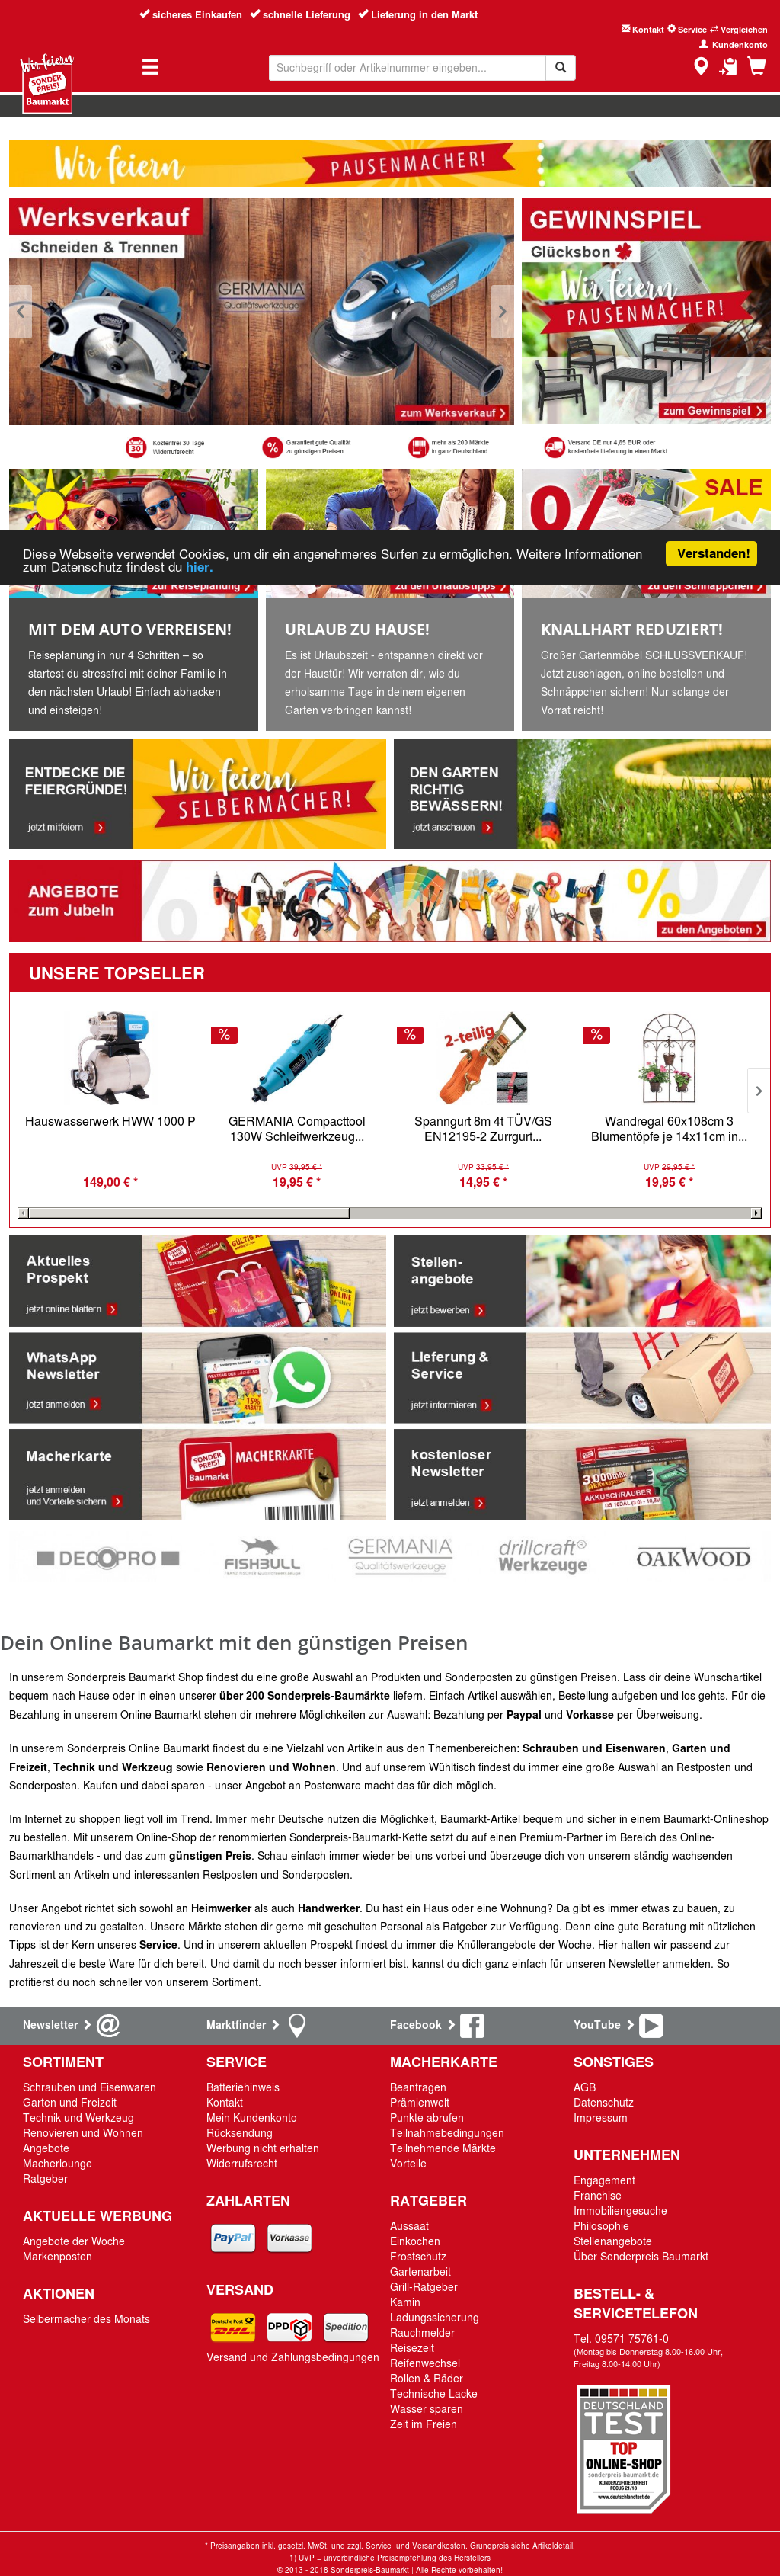 sonderpreis baumarkt competitors, revenue and employees - owler